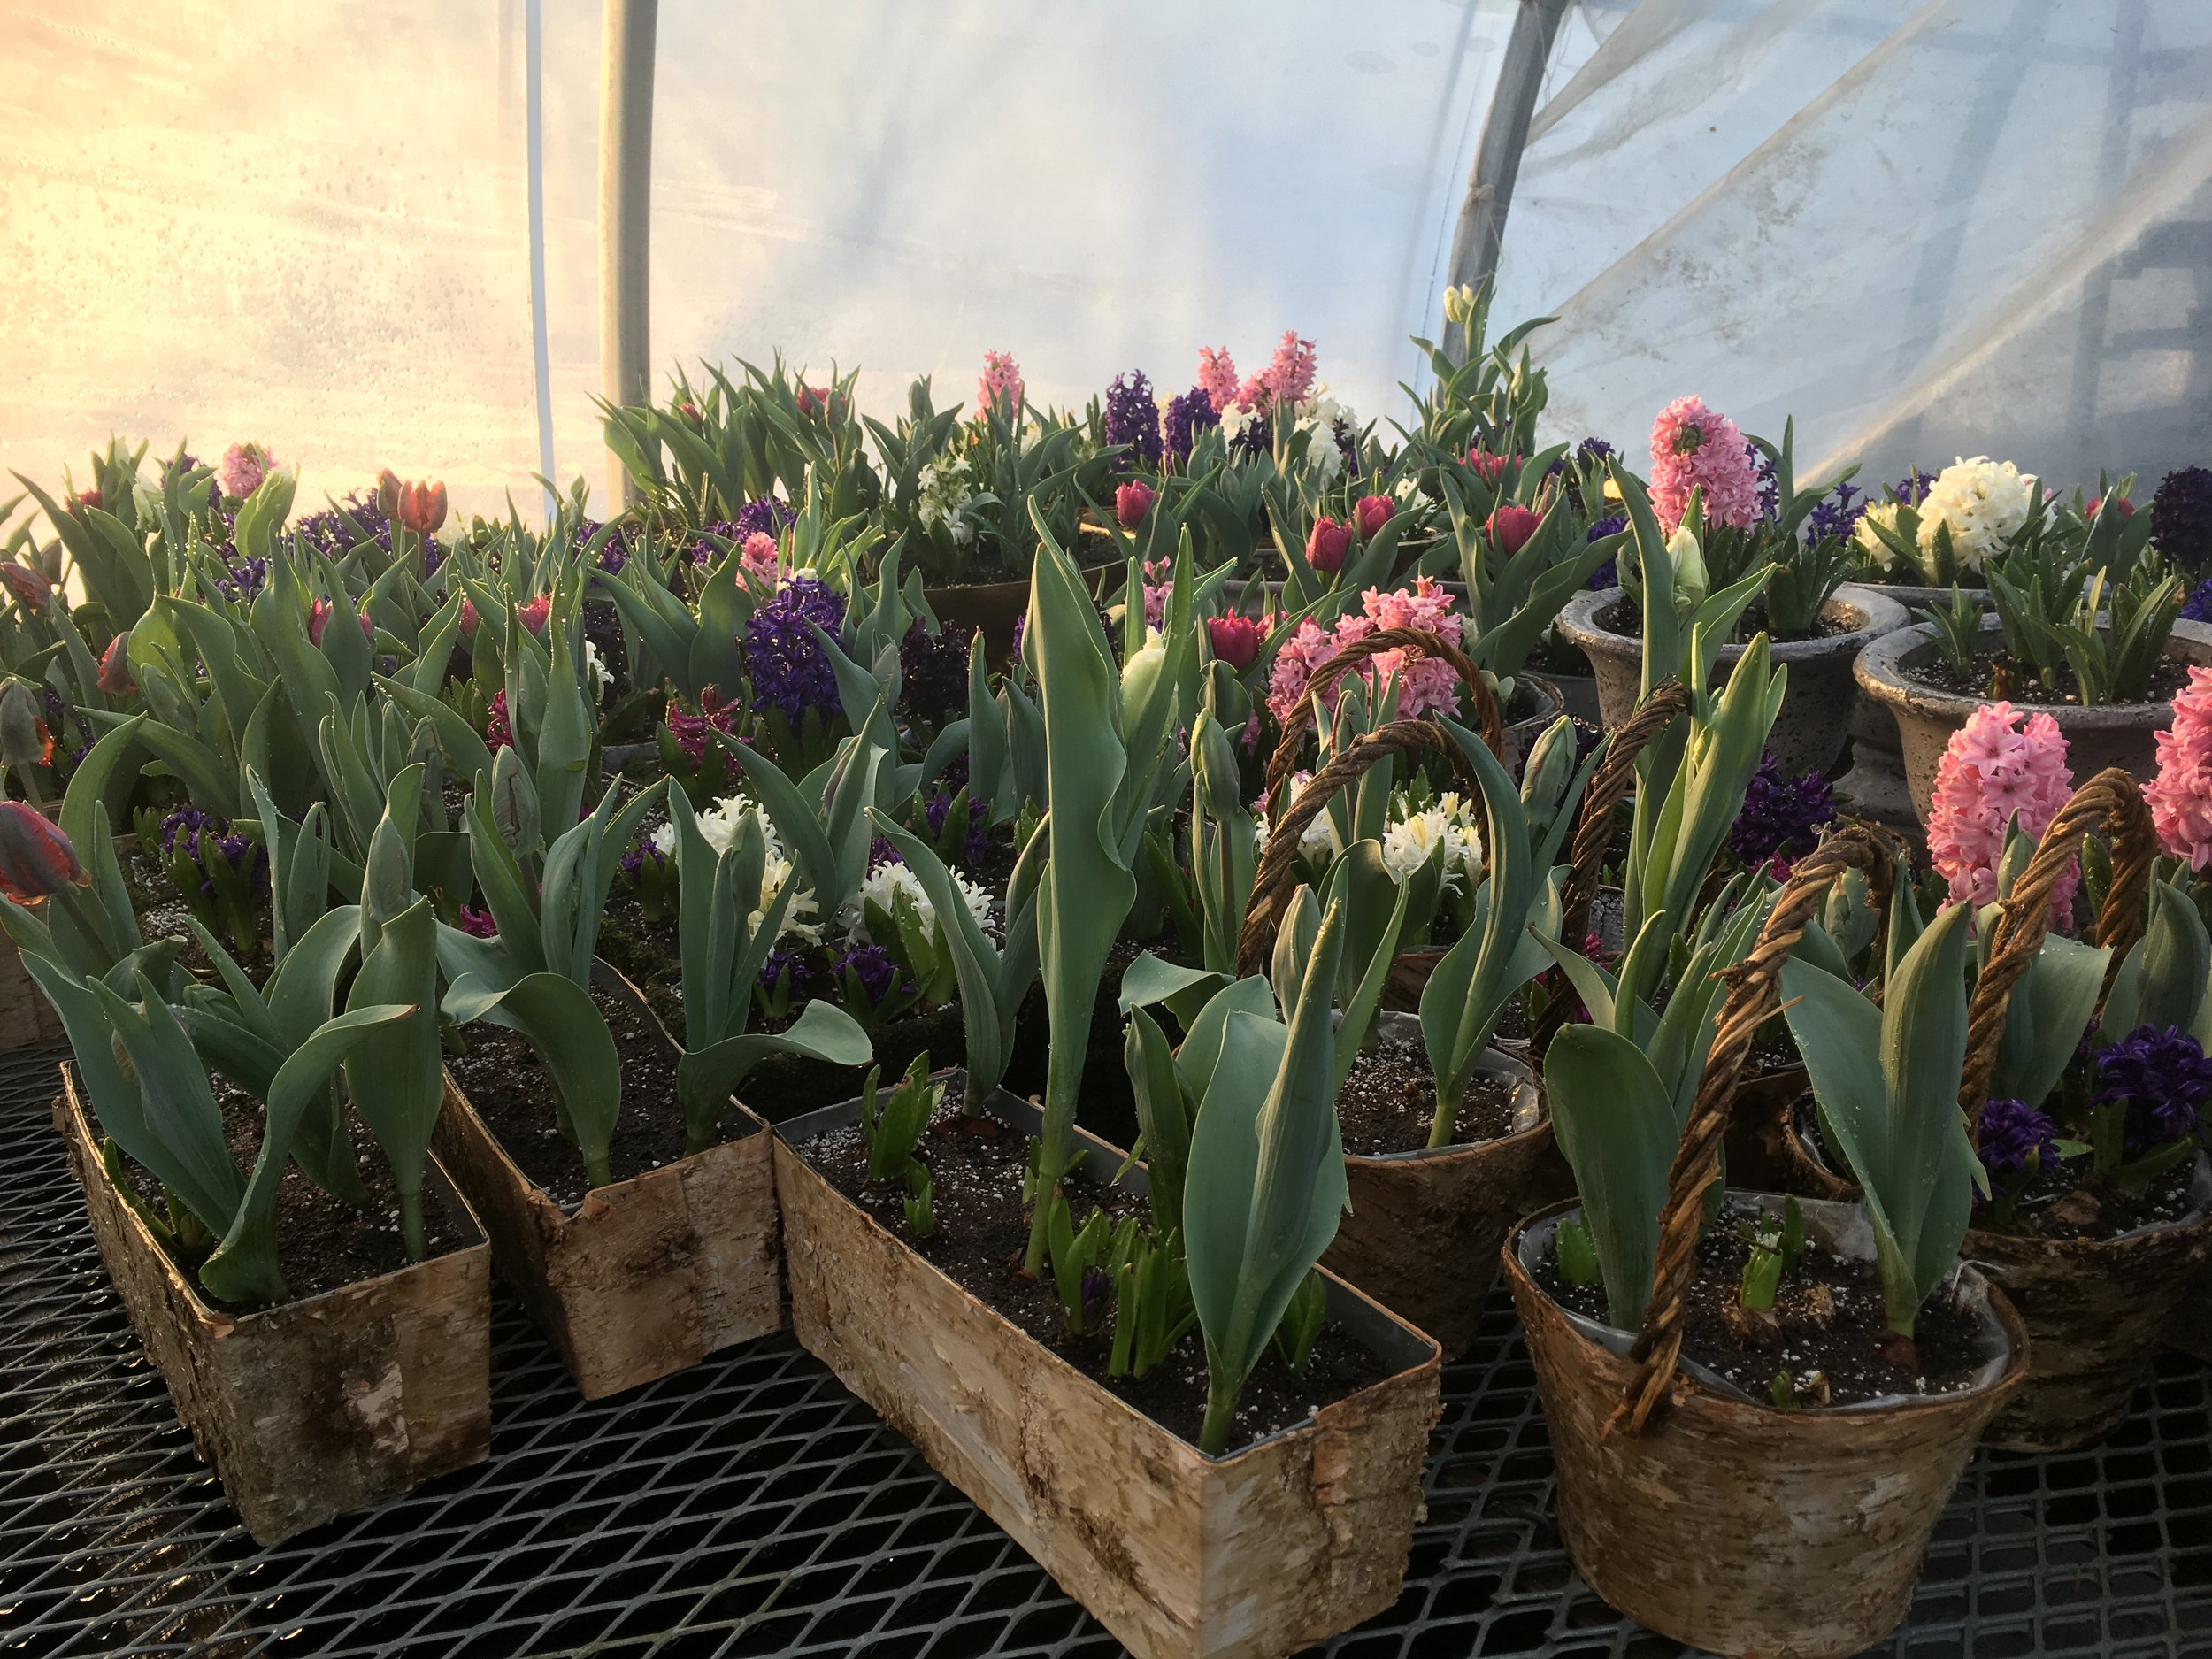 Come See Us! - ..if you are in the area this weekend, we will be at the Berkshire Grown Winter Market, stop by and say 'Hi!' We have been growing these incredibly fragrant and colorful potted bulbs (tulips, hyacinth, snowdrops, amaryllis!) in the sweetest birch containers, to brighten these drab days! Pick one up for yourself and all your friends, they are the perfect dose of cheer, sure to put a smile in your heart!:)